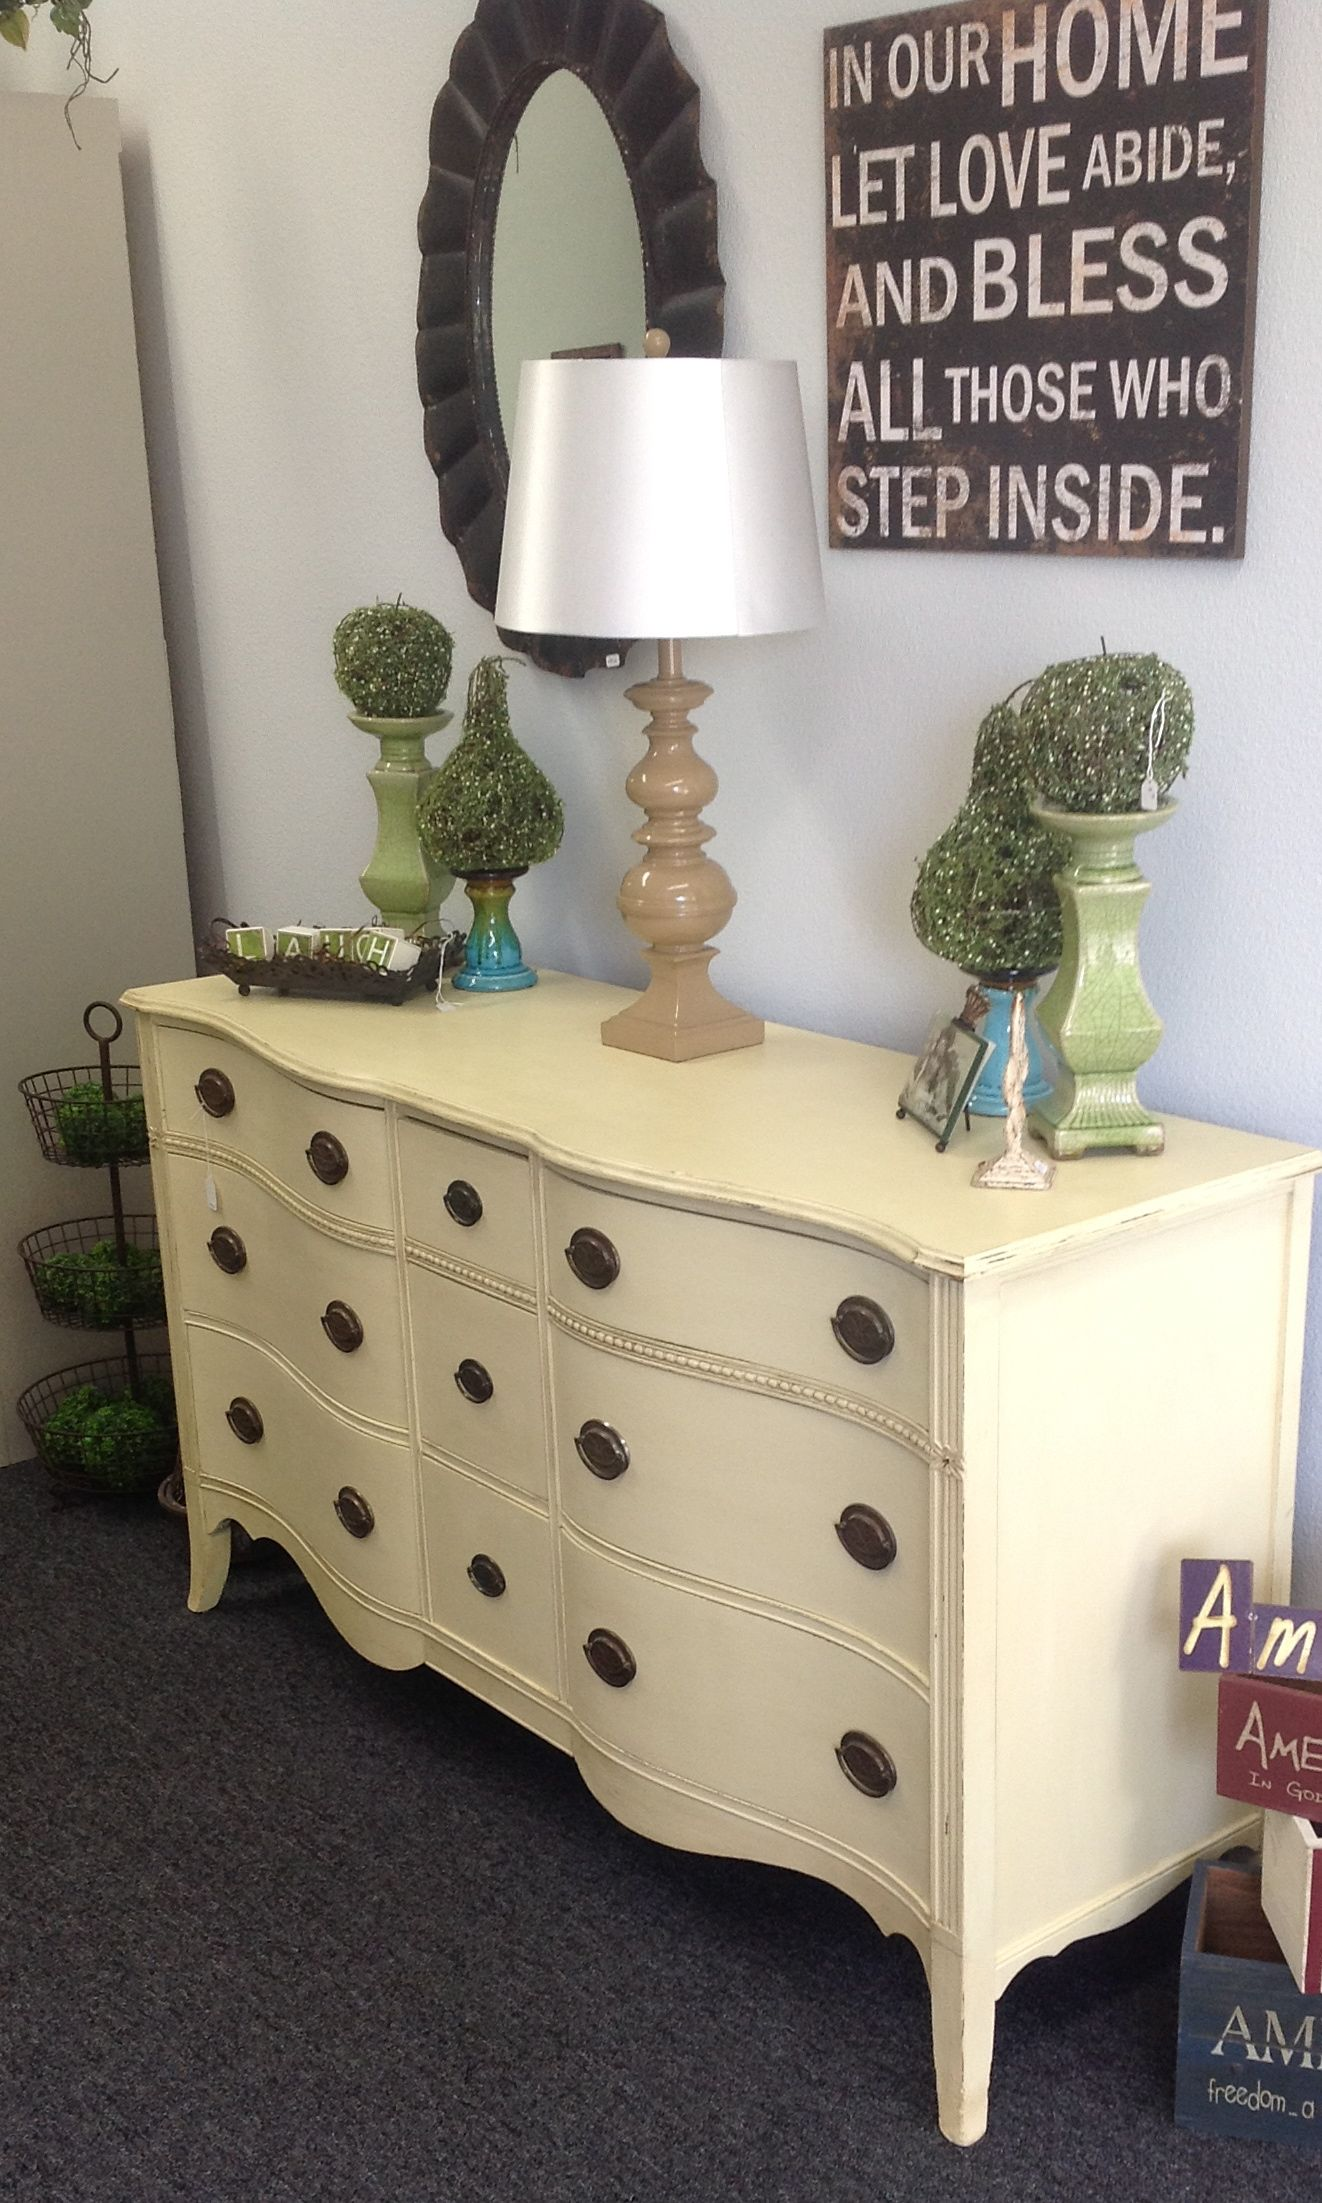 Antique Dresser Painted In Cream Chalk PaintR Decorative Paint By Annie Sloan